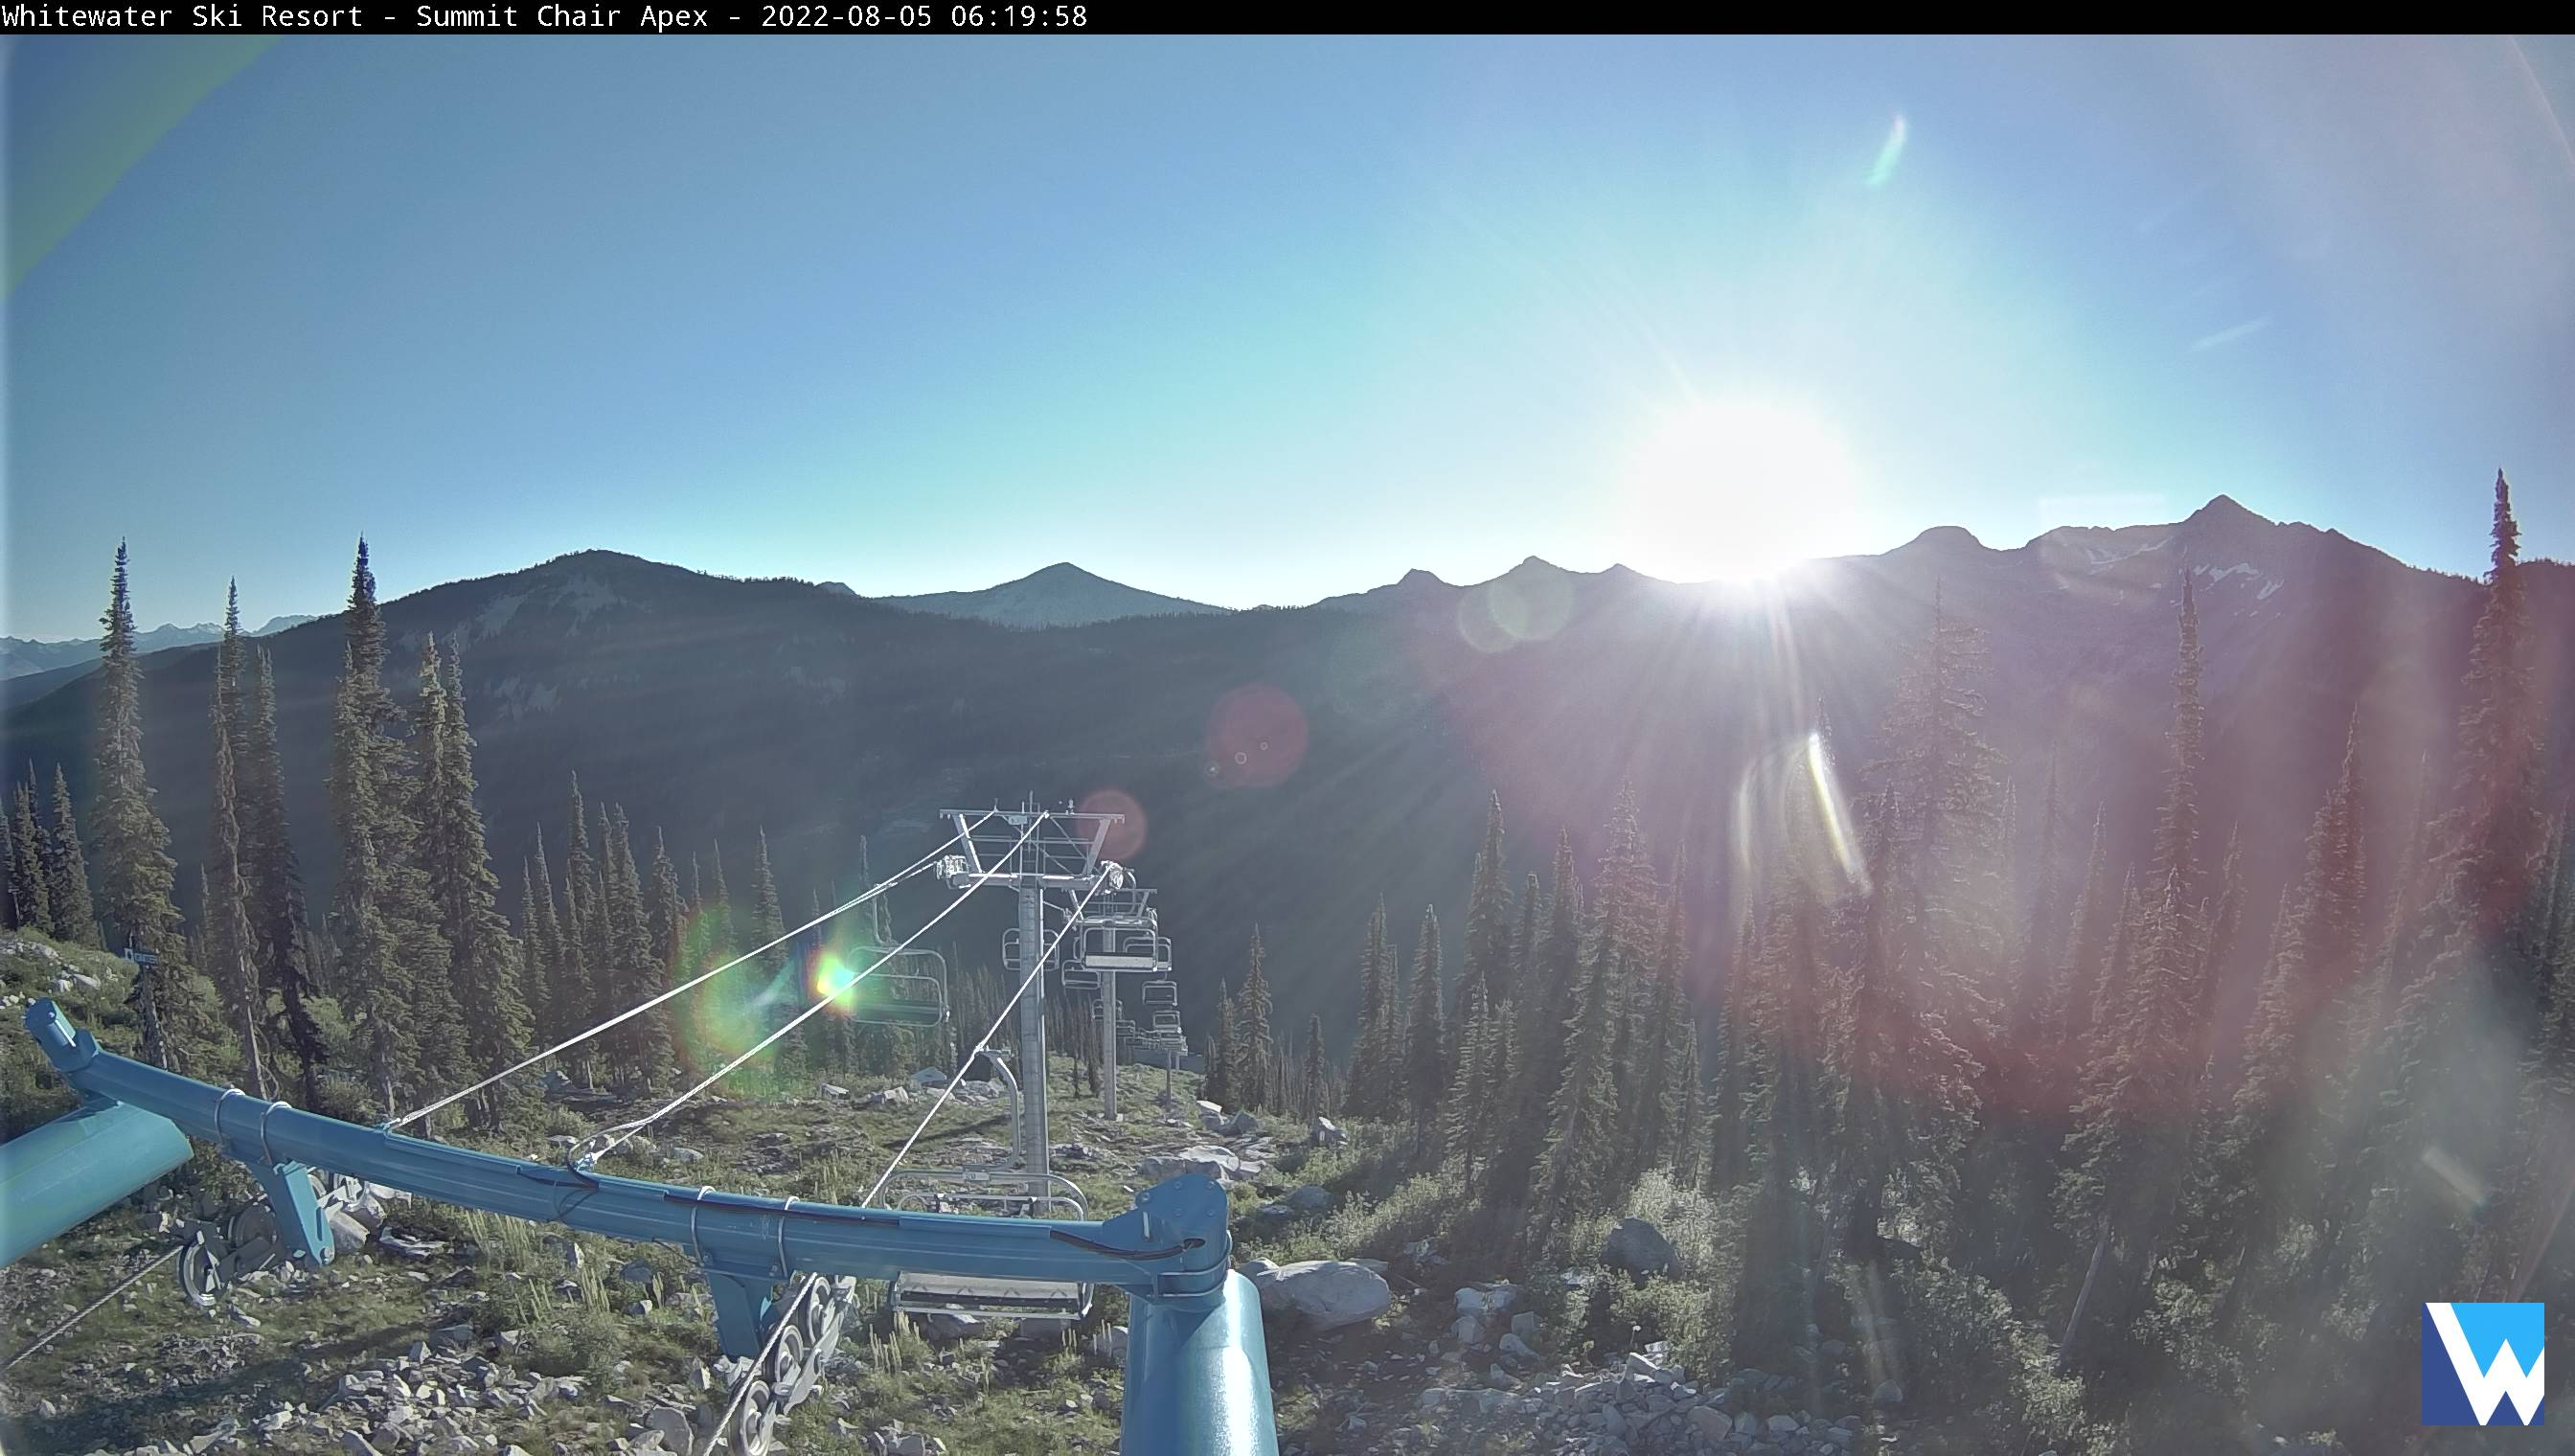 Webcam Whitewater